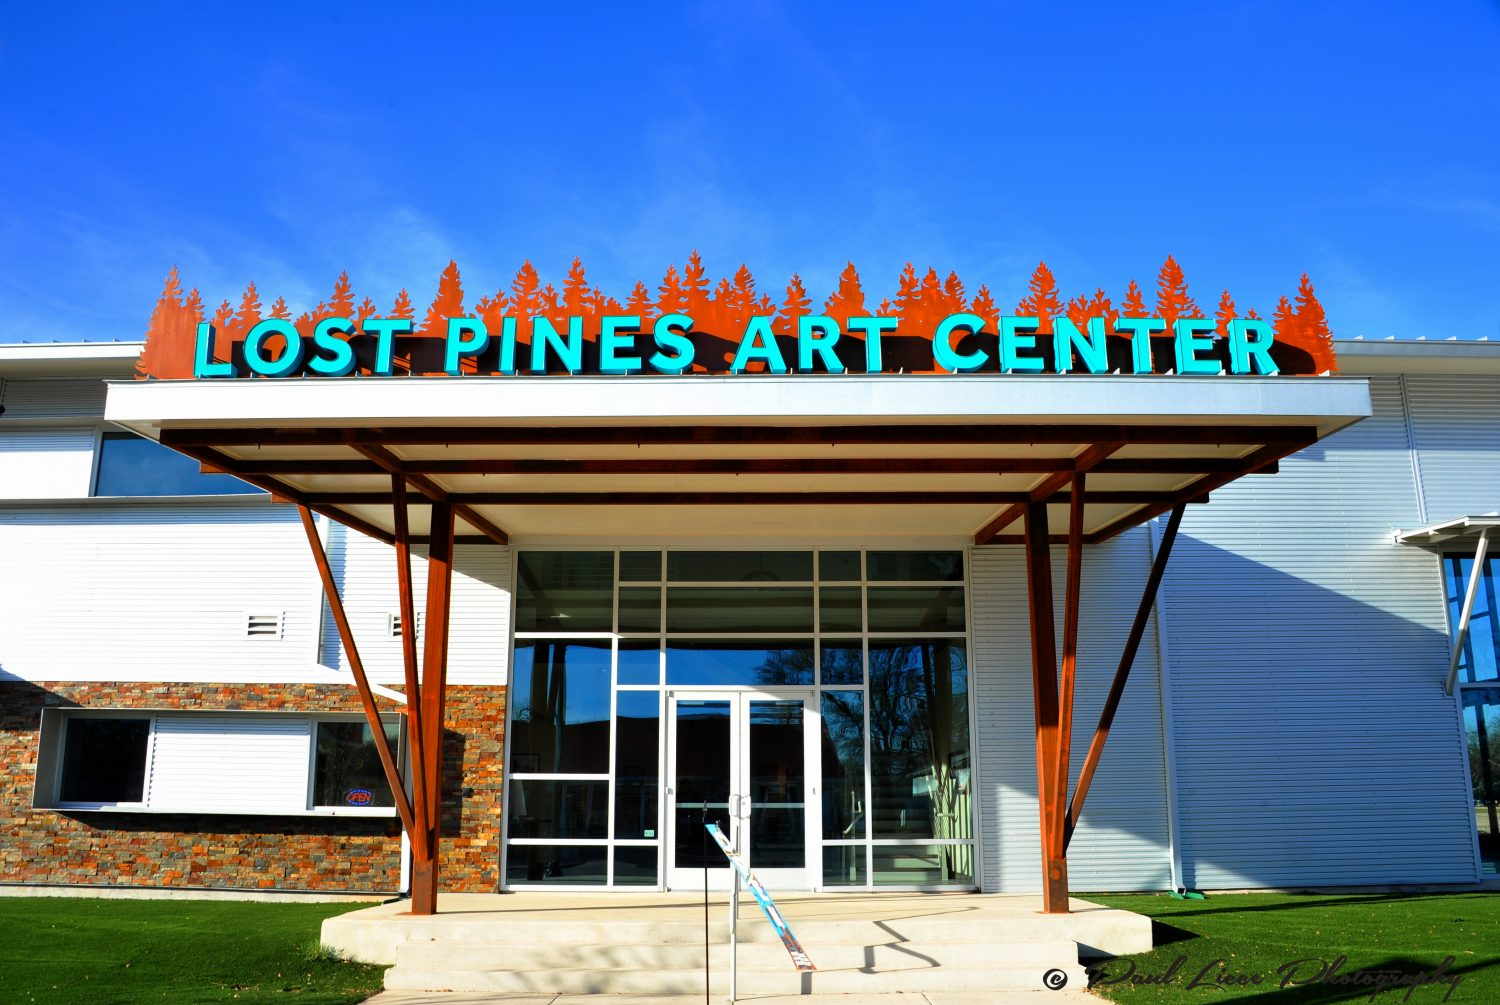 Front entrance of the Lost Pines Art Center